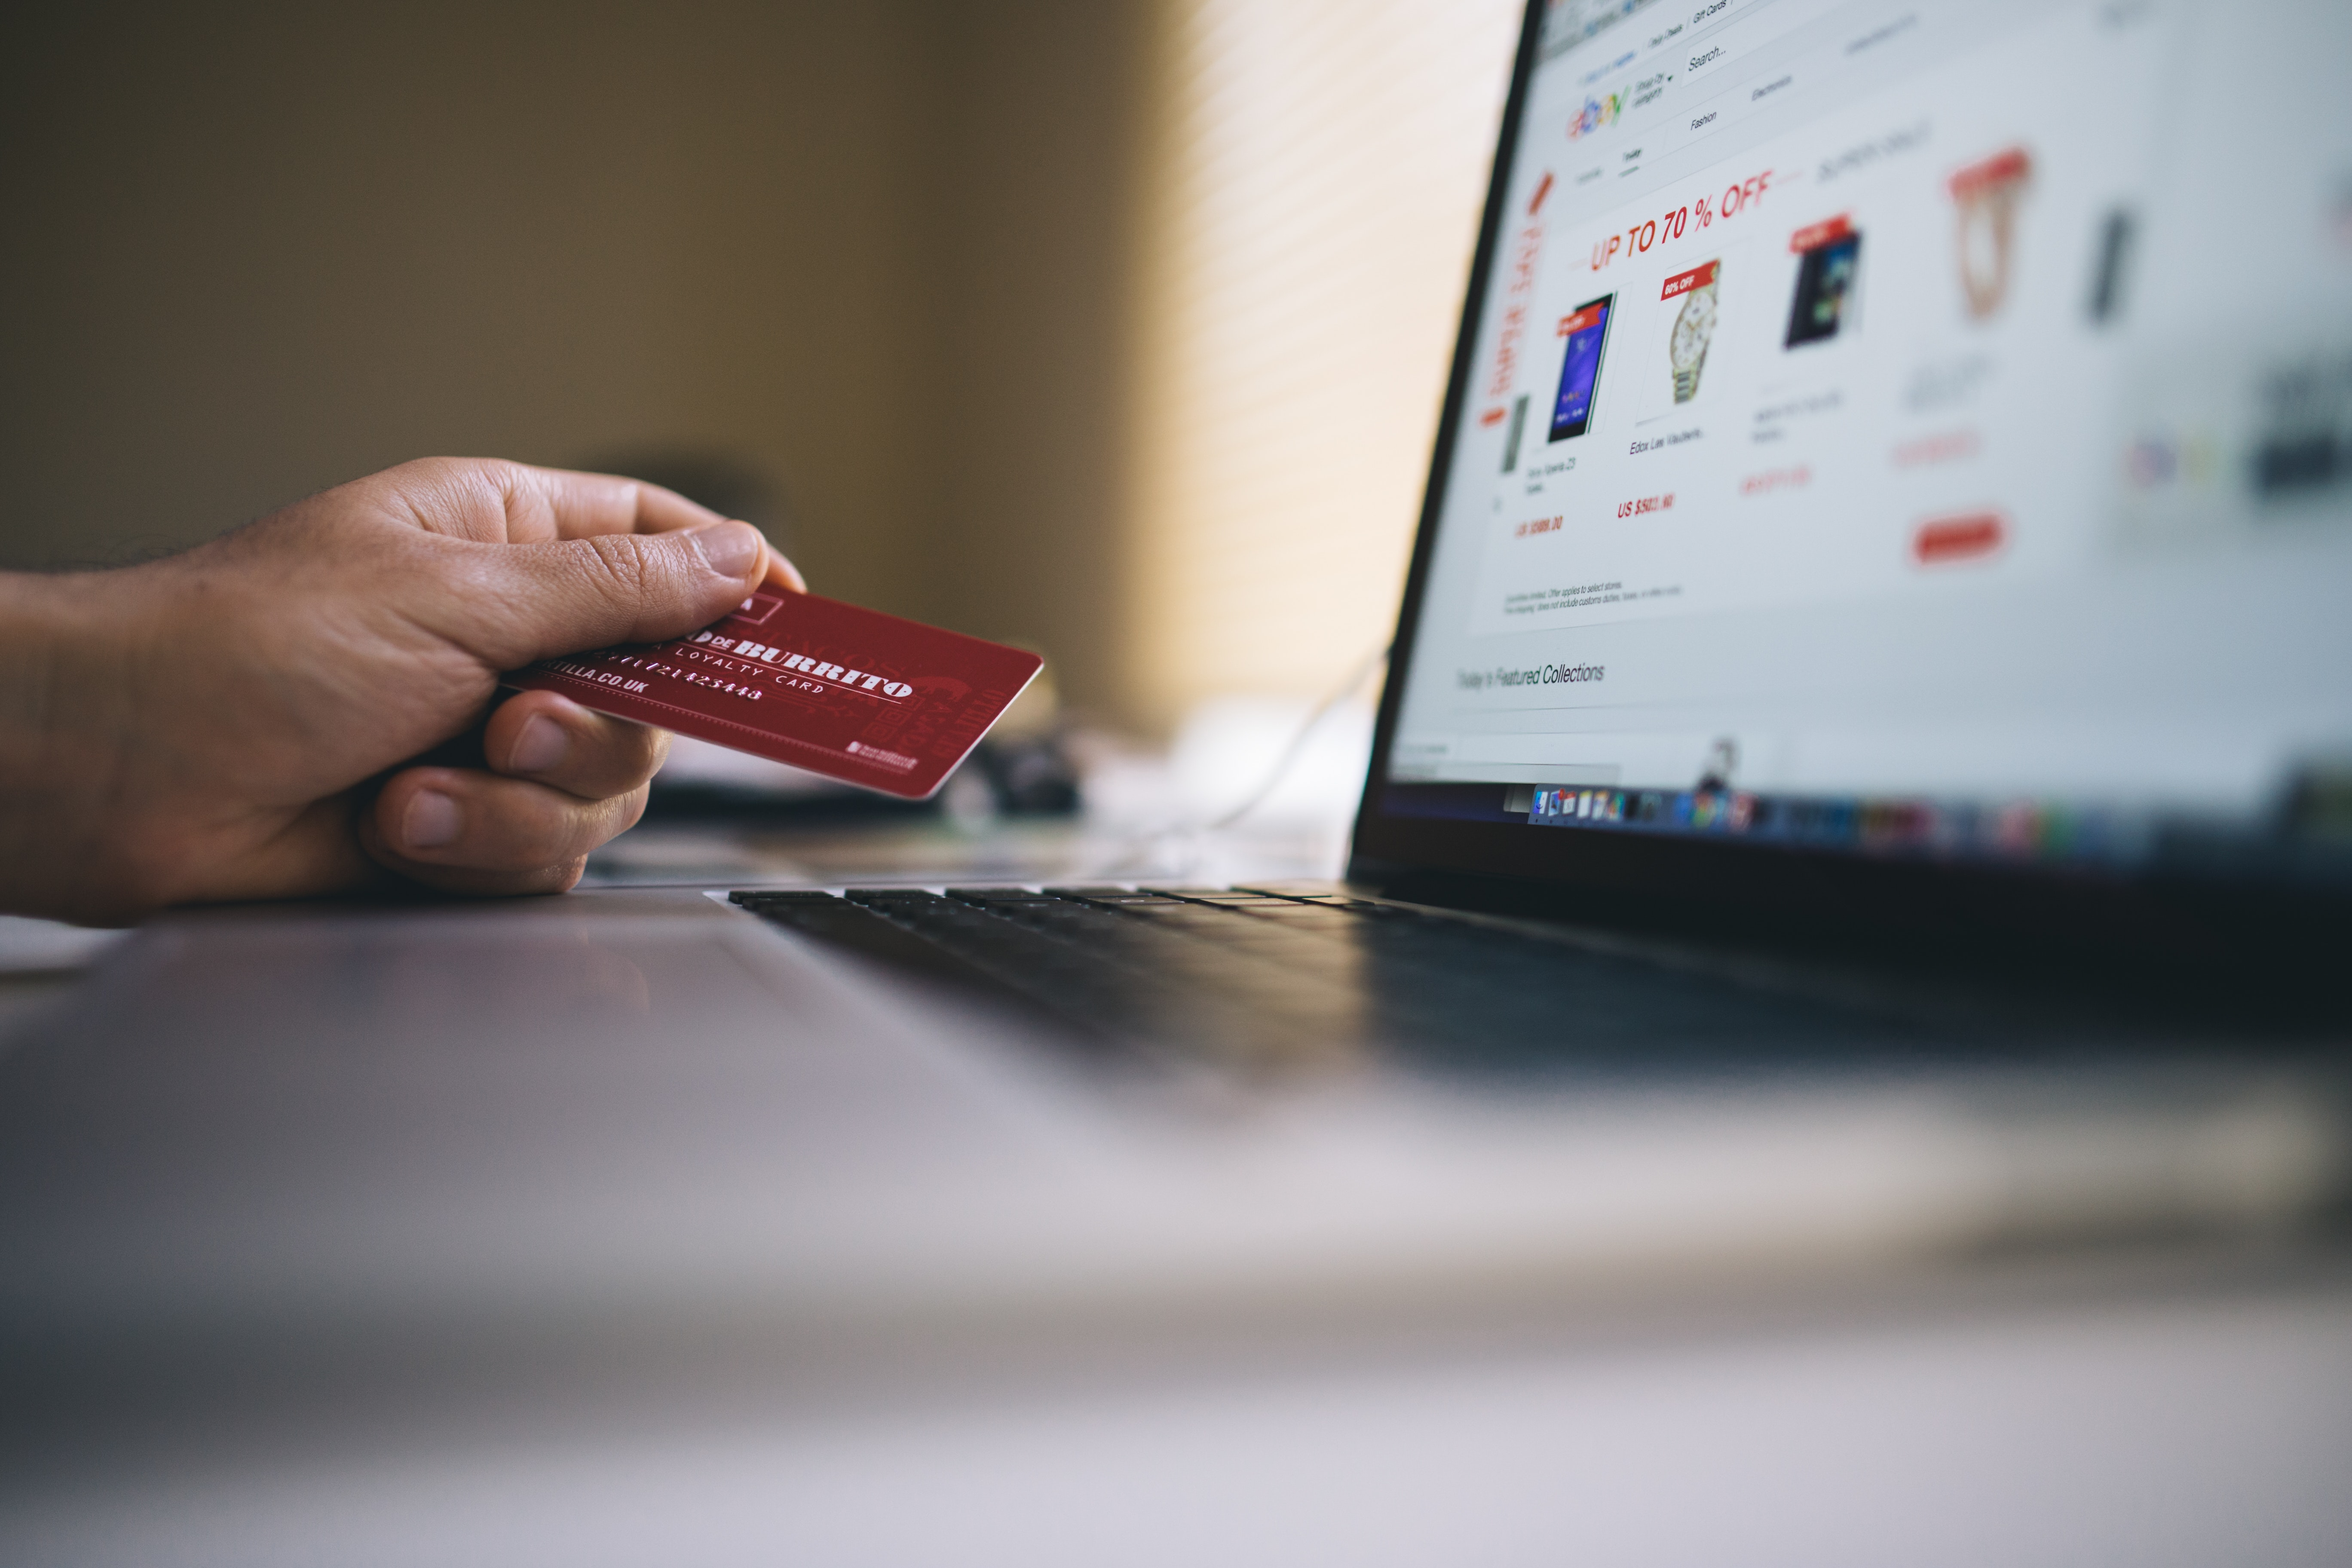 The future of e-commerce, available to everyone